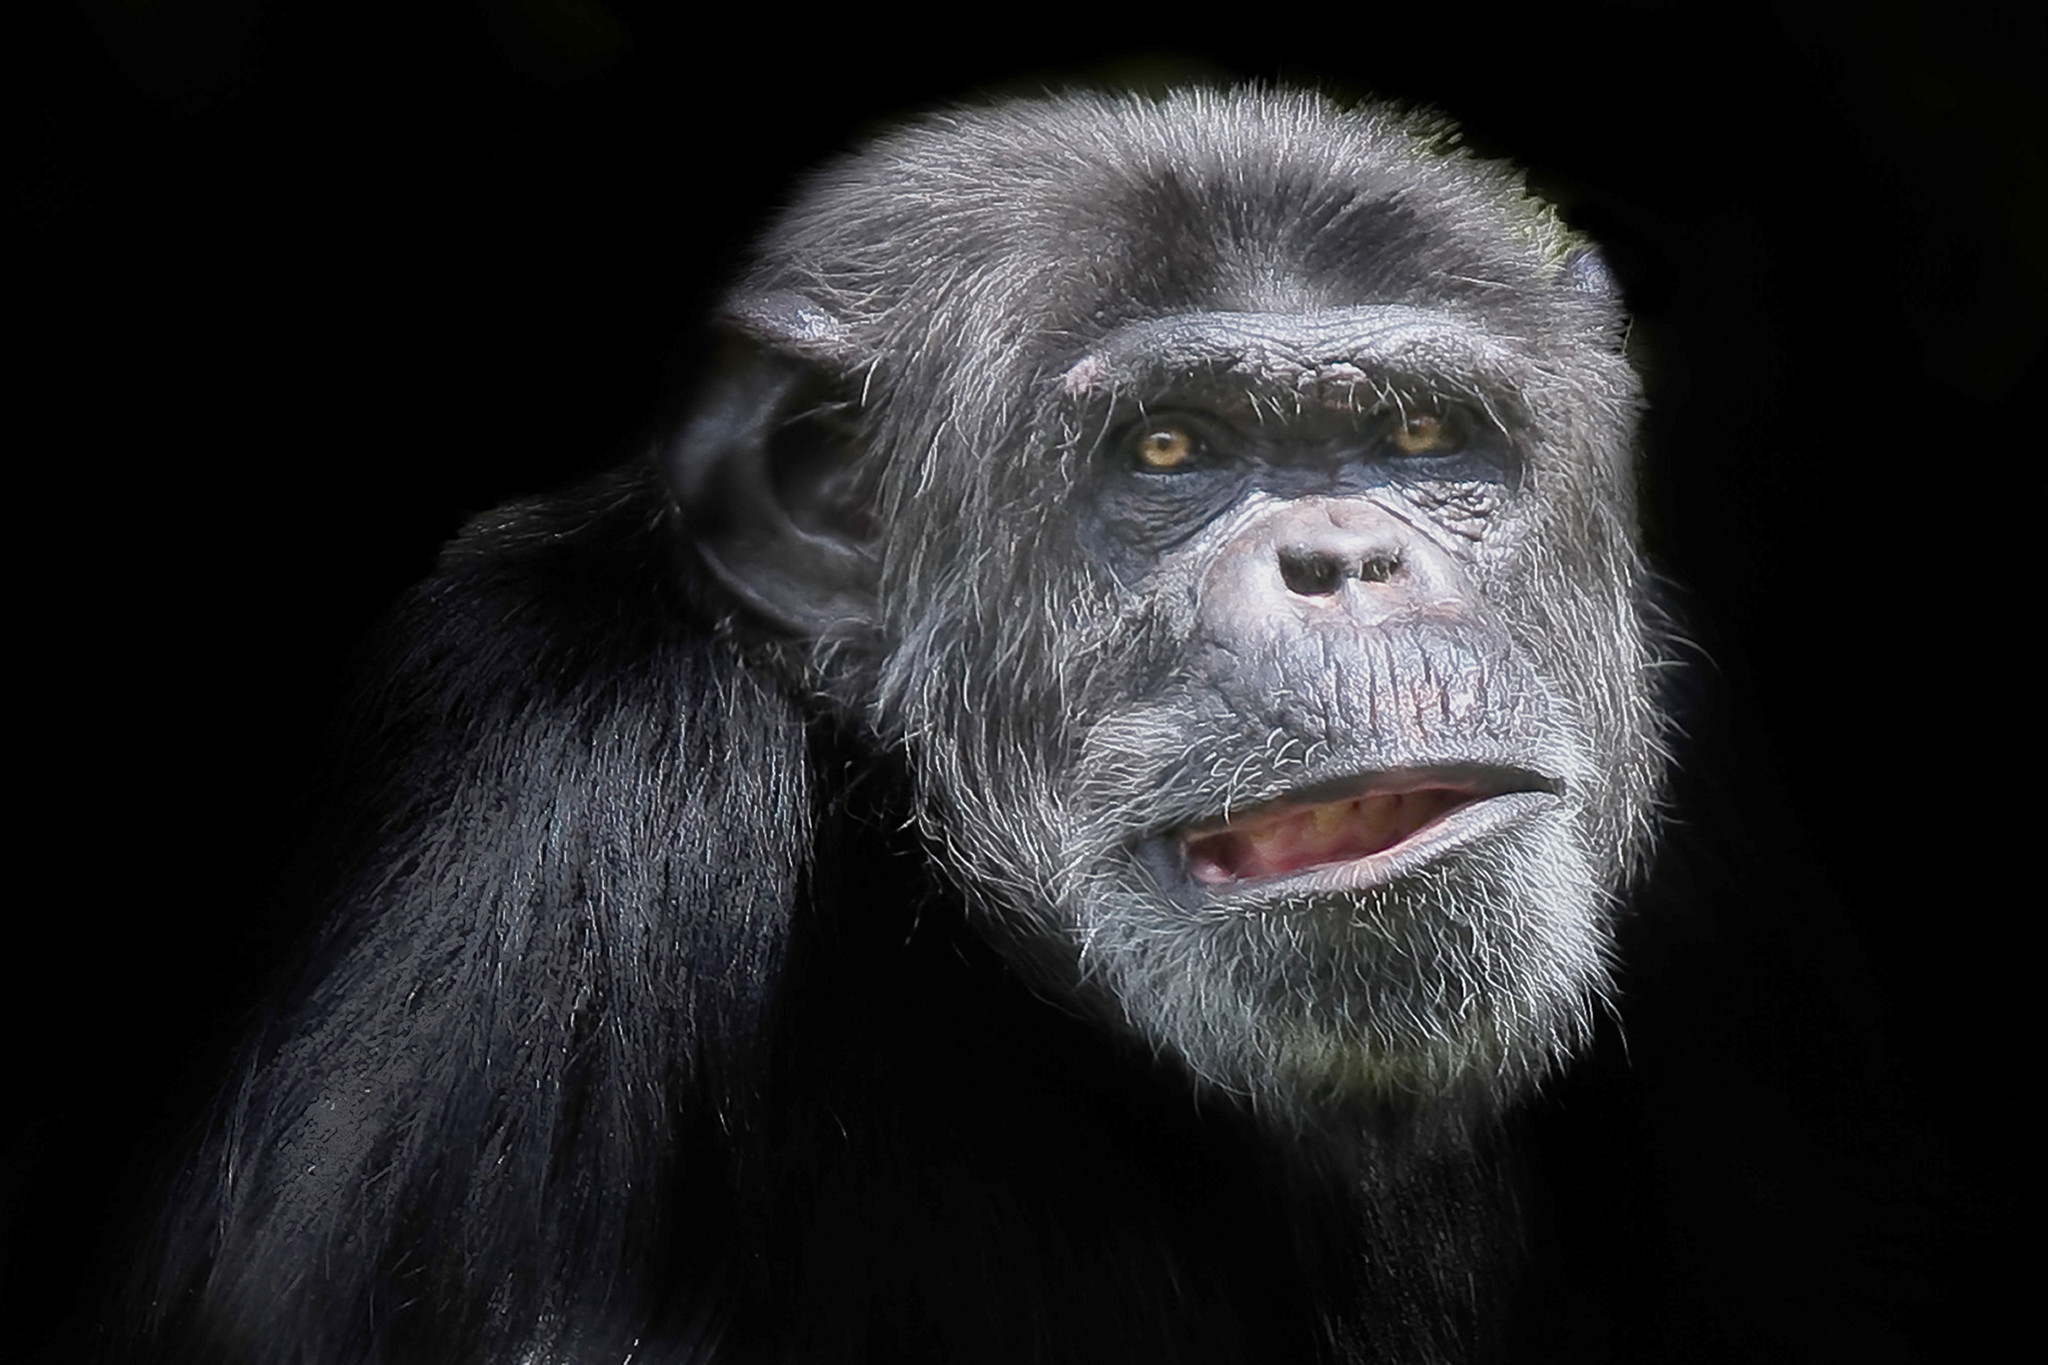 New rules could end use of chimps in medical research